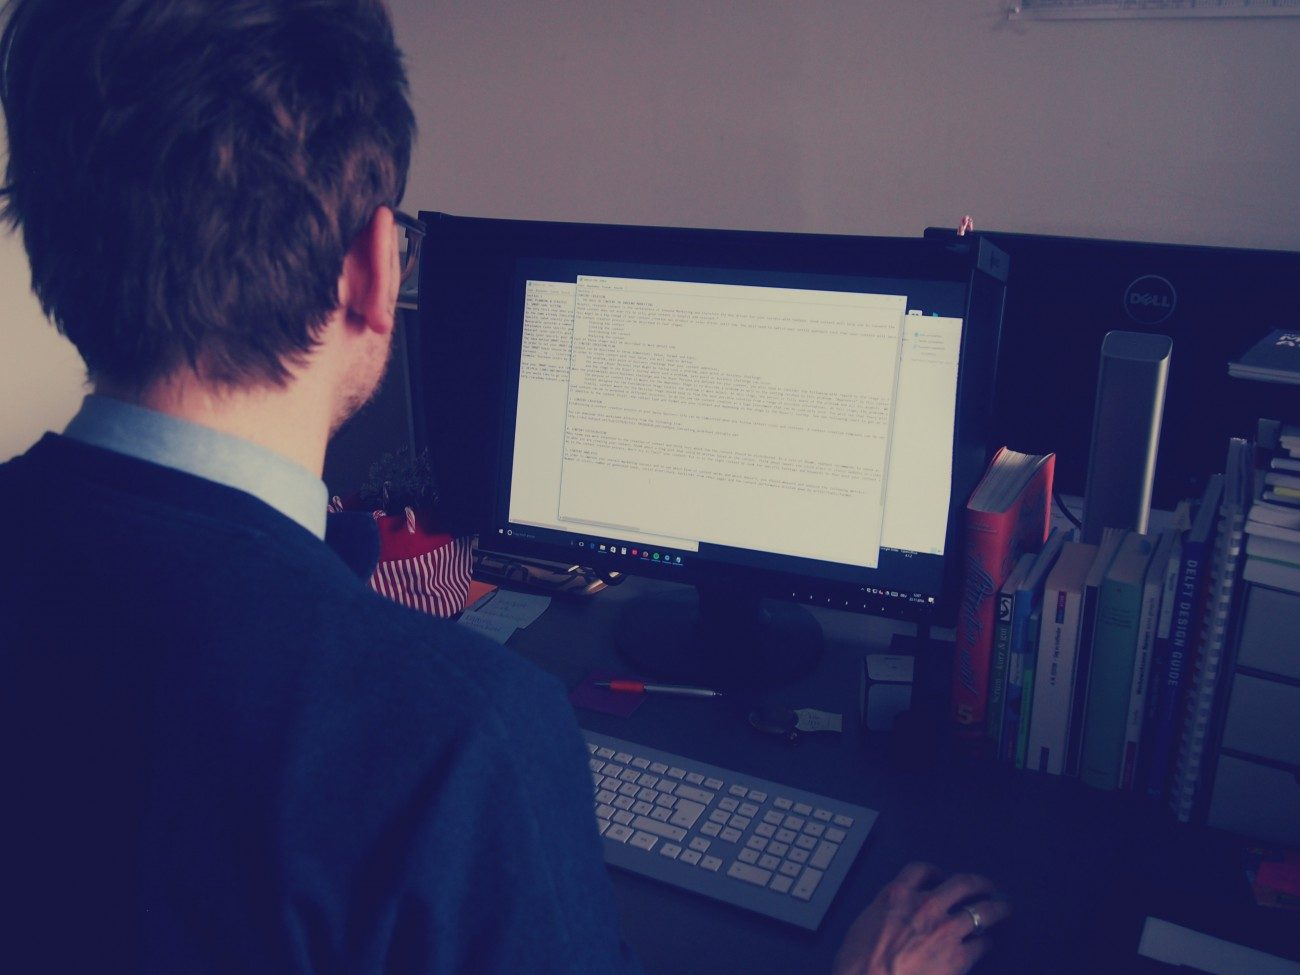 Script-writing of the HubSpot Certification Guide